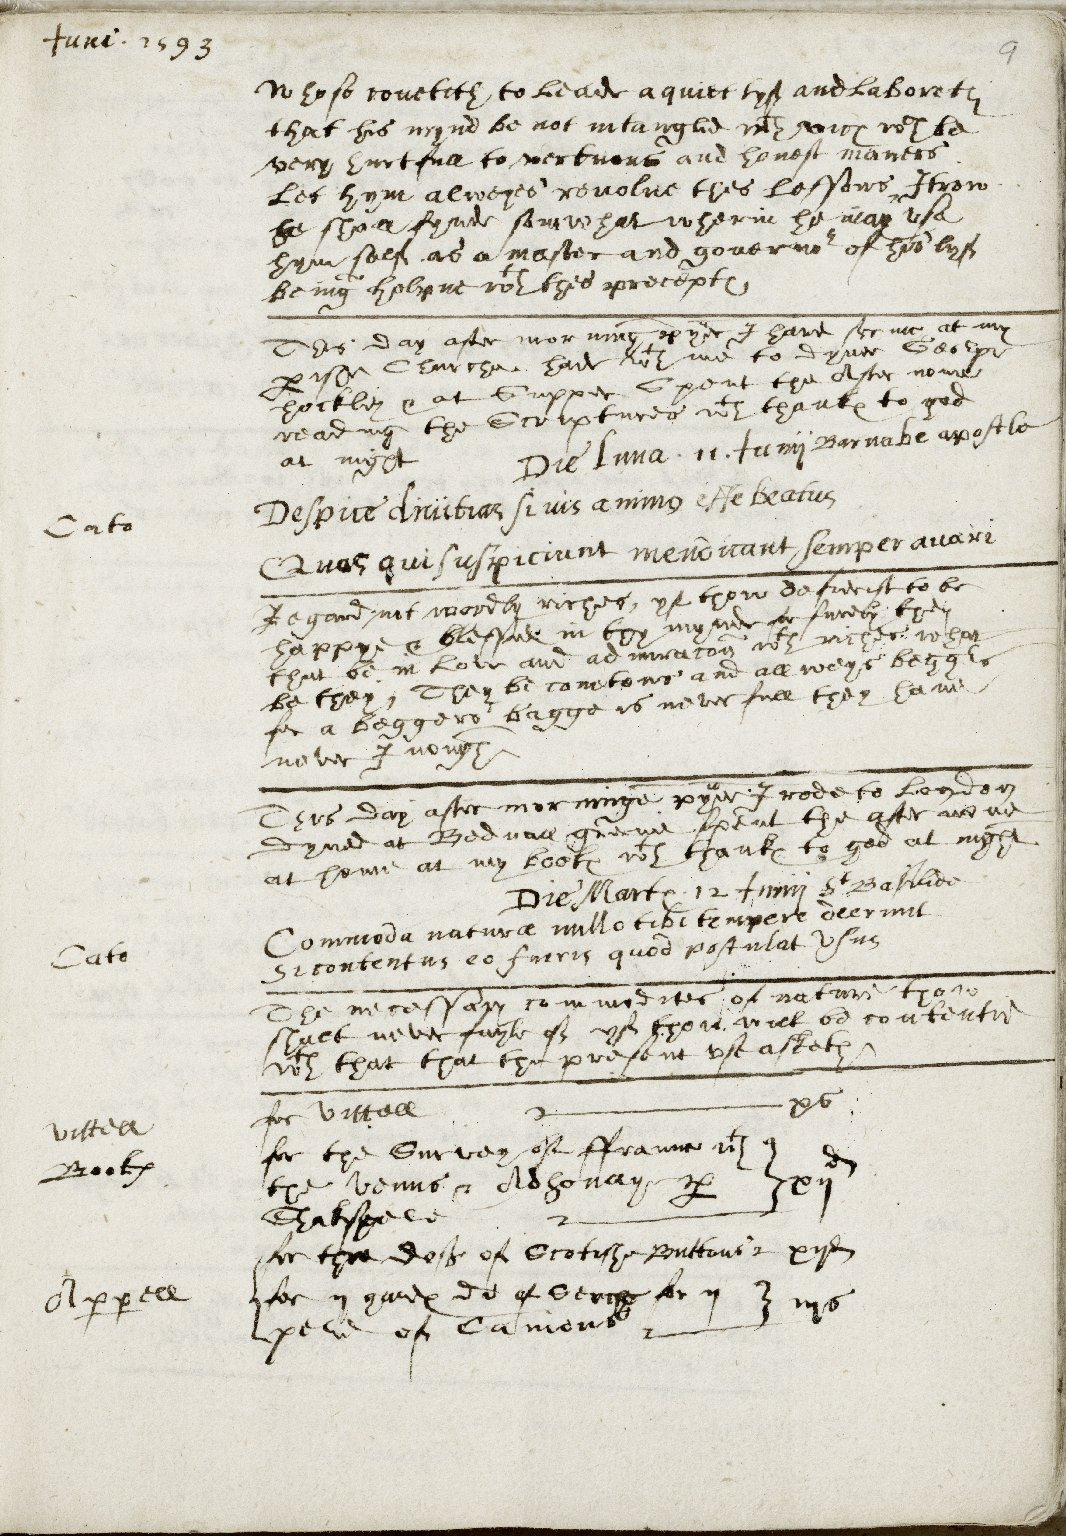 Diaries of Richard Stonley, May 14, 1593 - May 24, 1594.